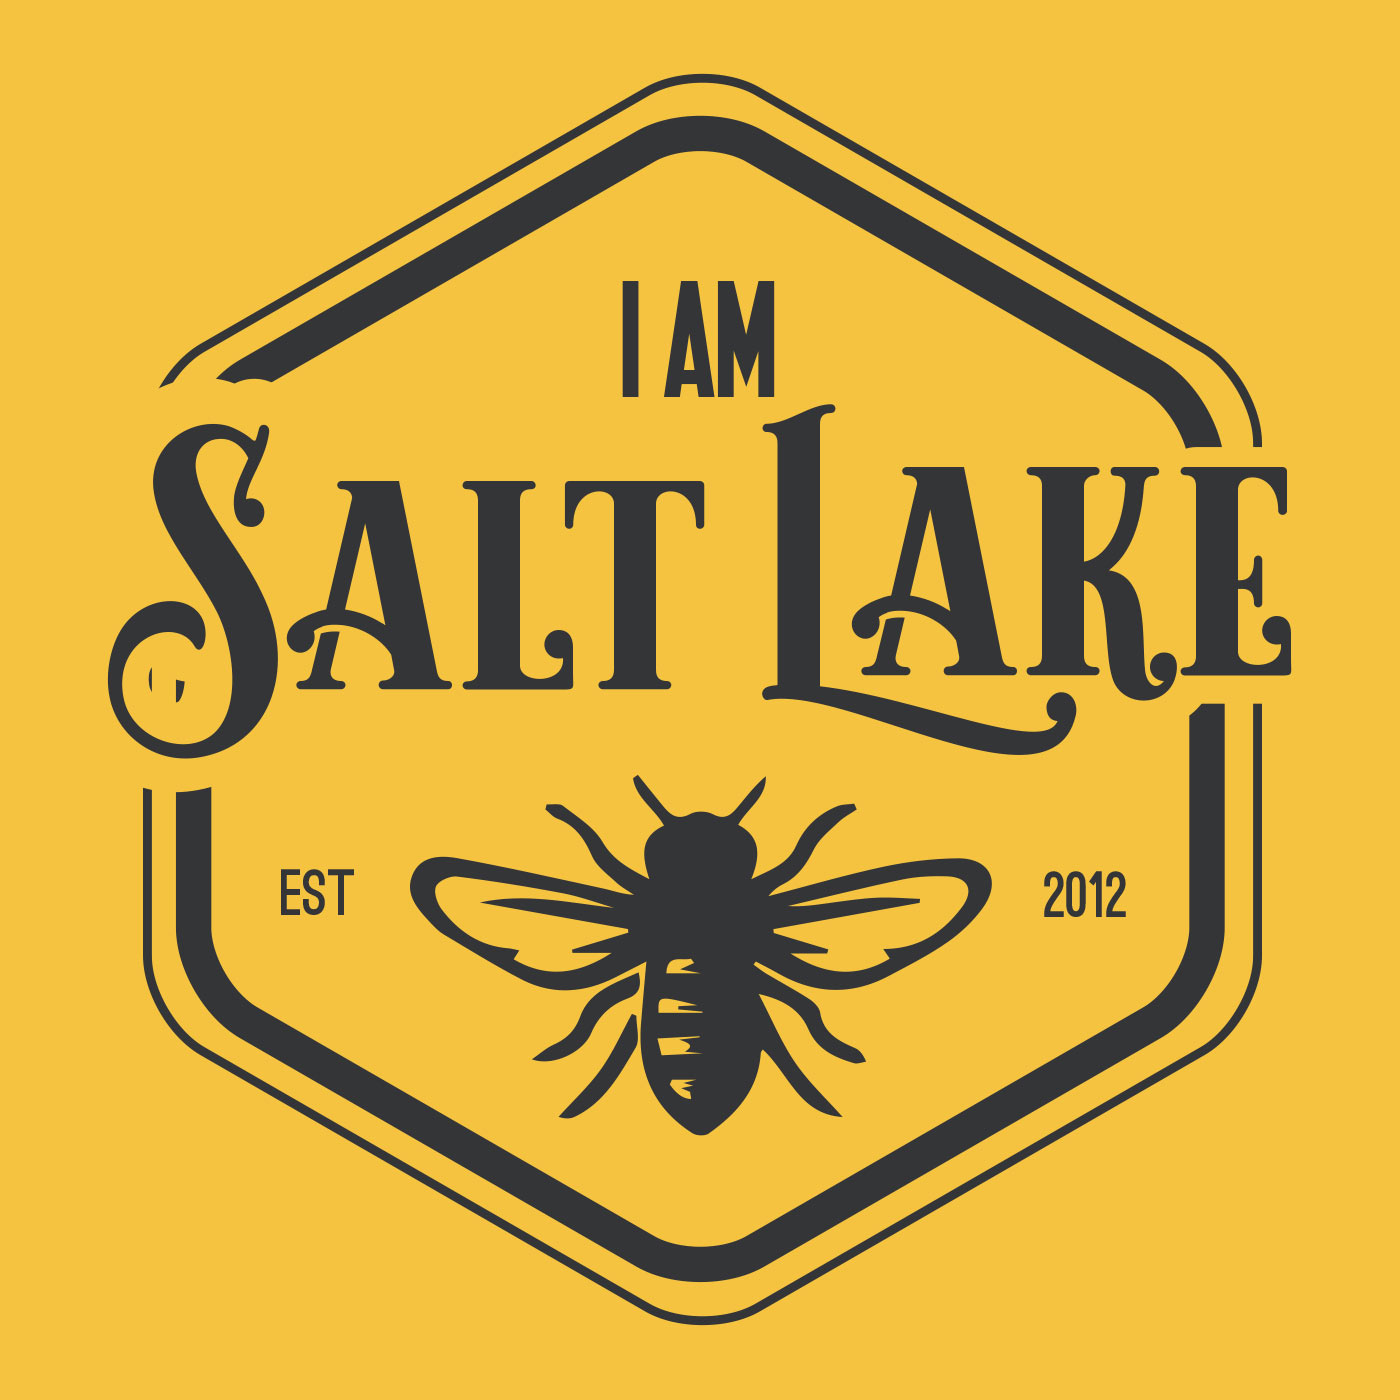 I am Salt Lake by Chris   Krissie Holifield on Apple Podcasts 968a97a87